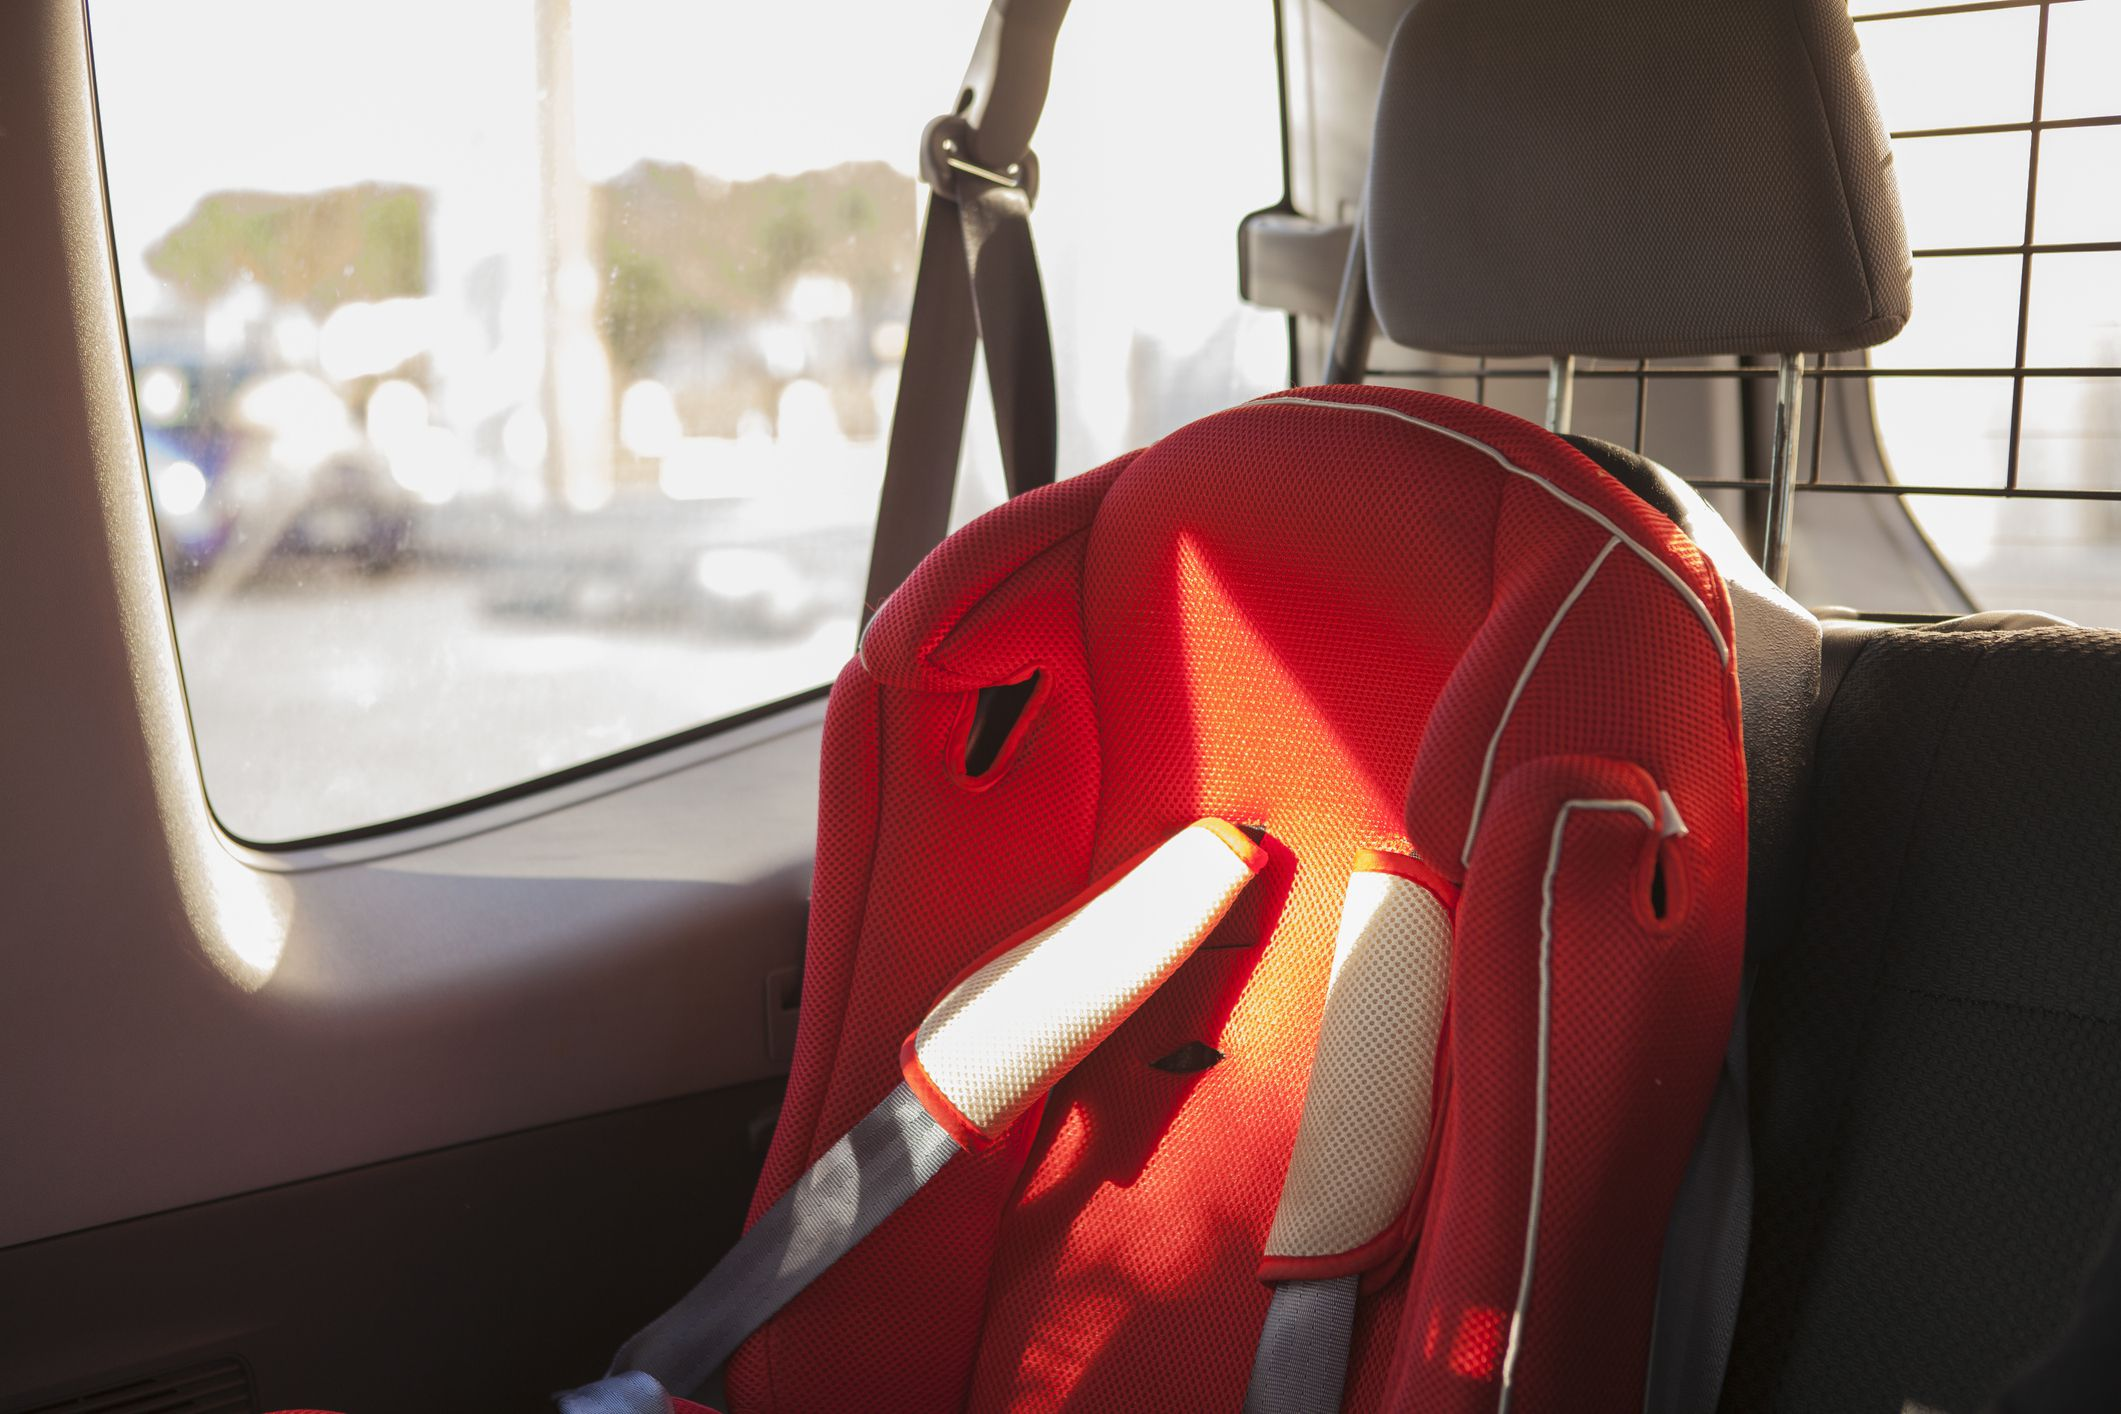 Vehicular Child Restraint Laws in Tennessee